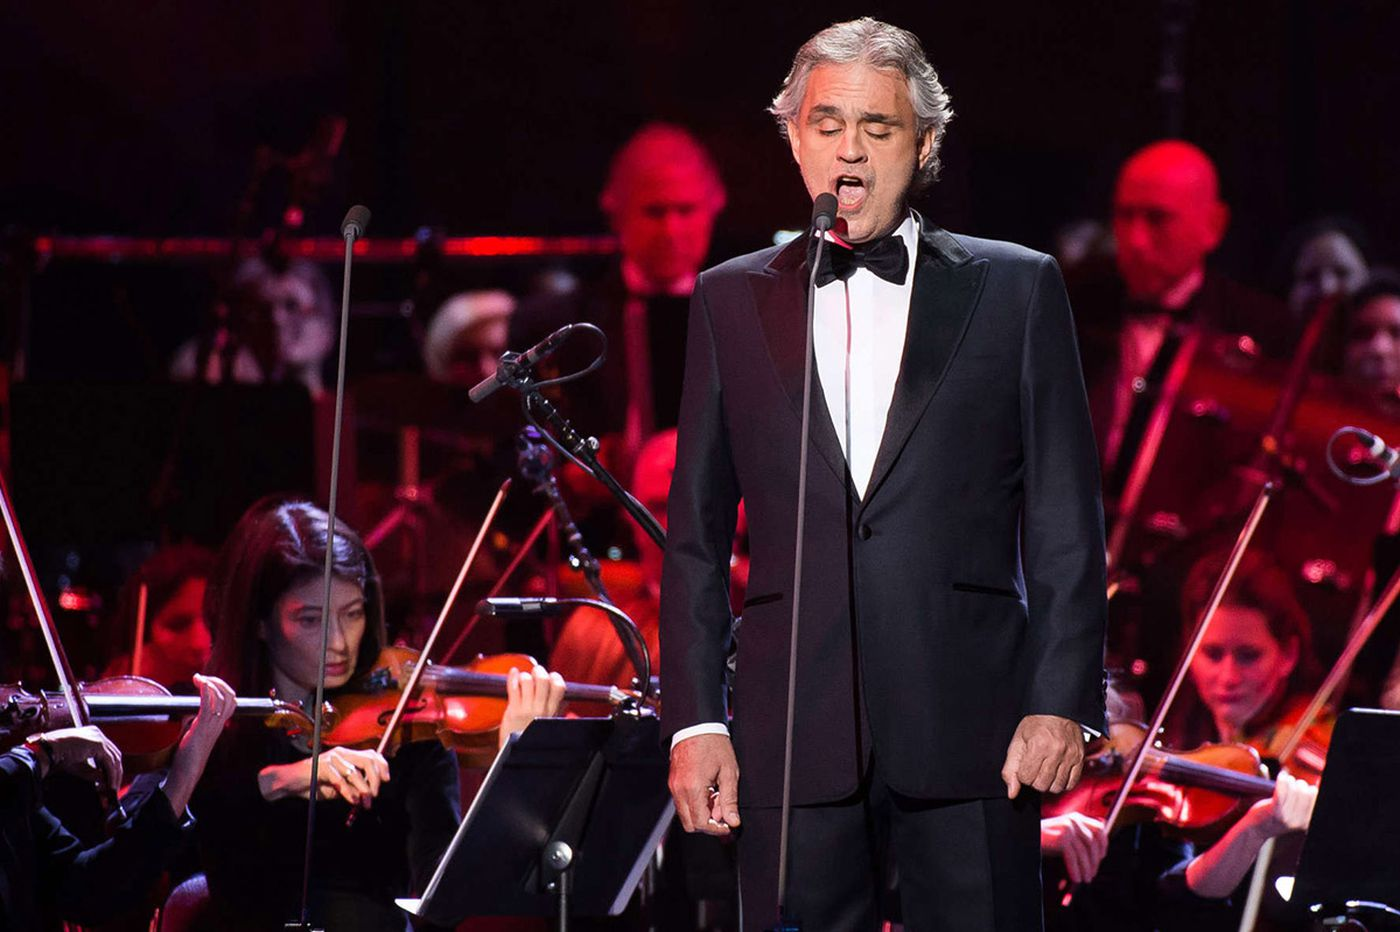 Review: Bocelli's tenor soars in many genres